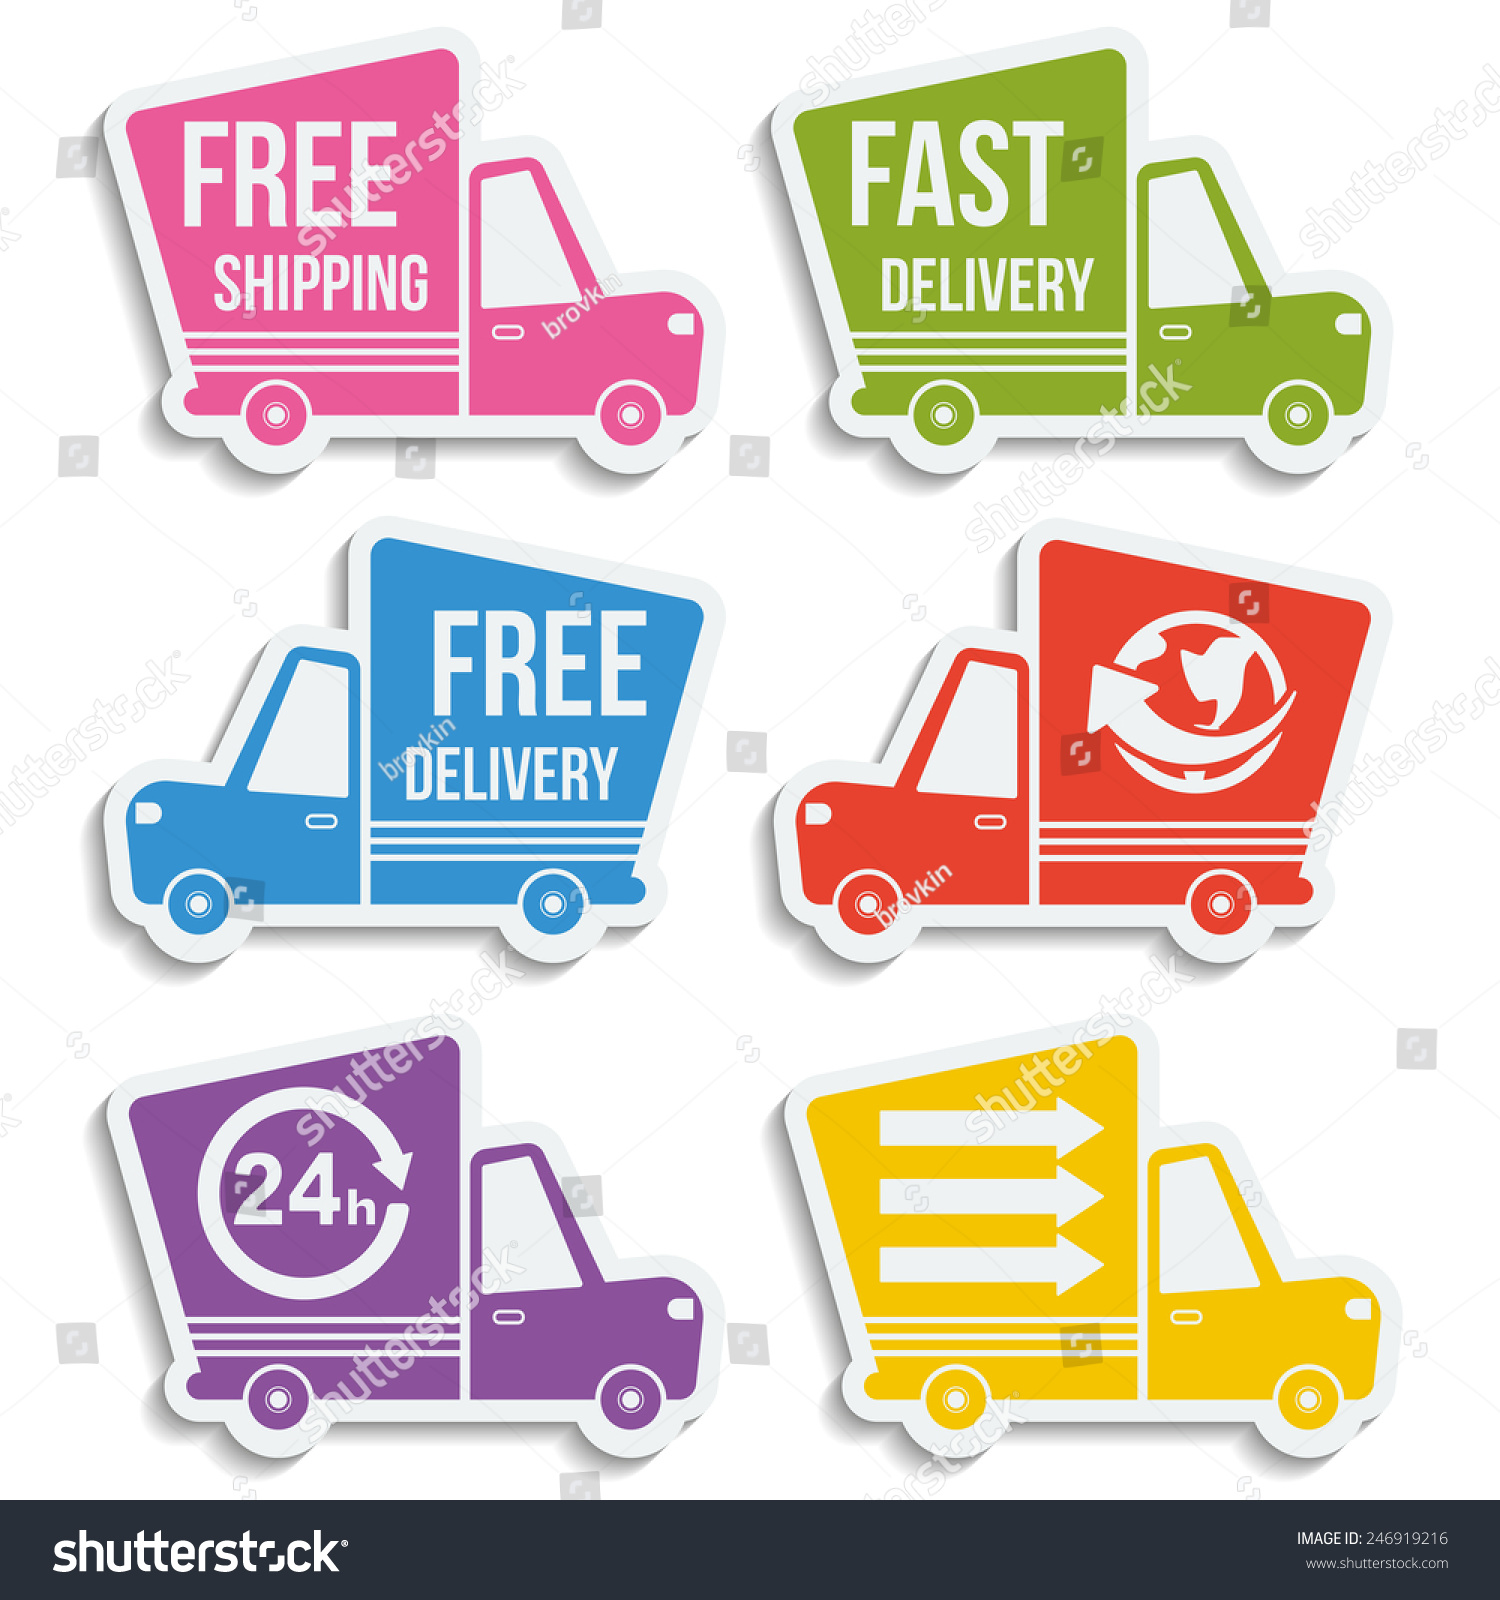 Shipping Delivery: Free Delivery Fast Delivery Free Shipping Stock Vector